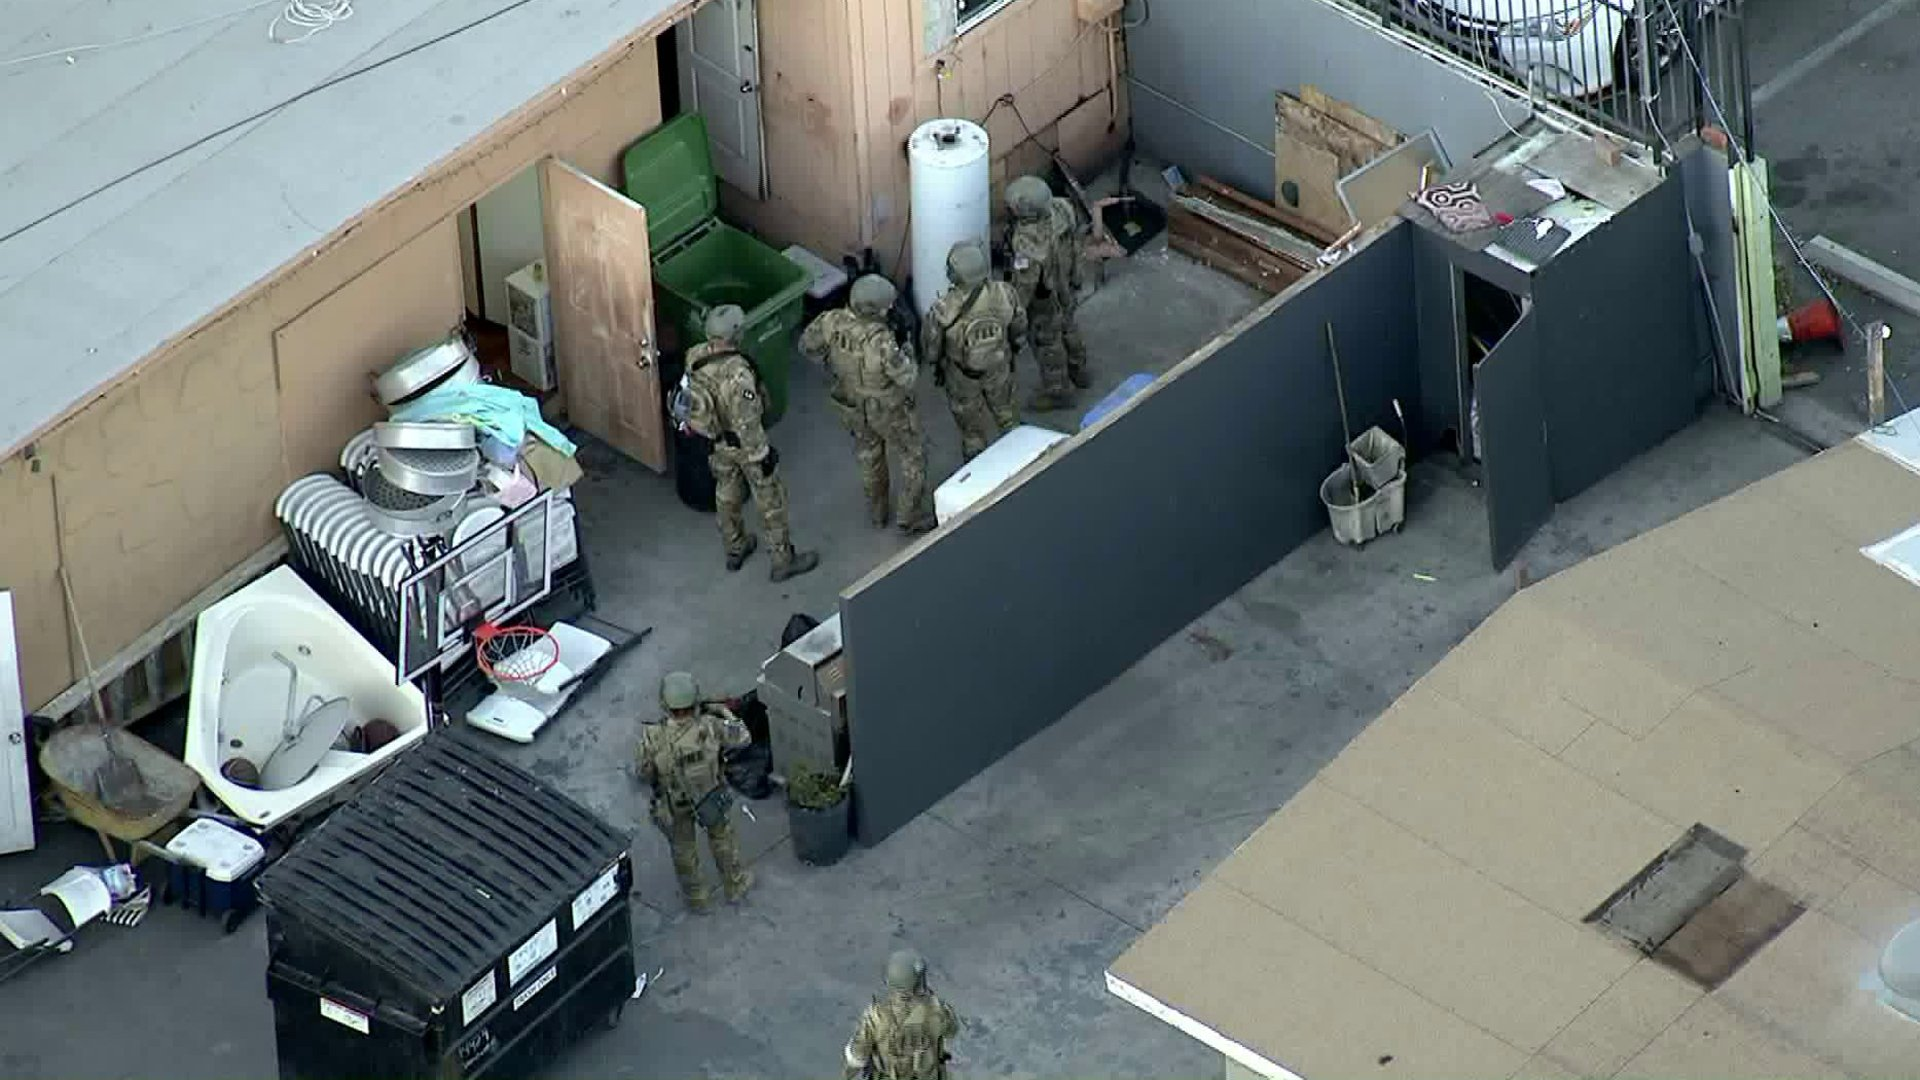 Federal agents raided the Kingdom of Jesus Christ church in Van Nuys on Jan 29, 2020. (Credit: KTLA)